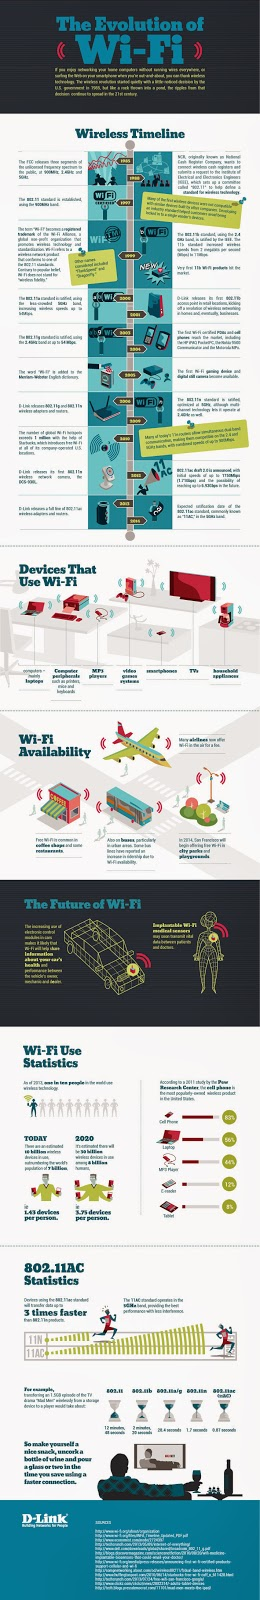 http://blog.dlink.com/the-evolution-of-wi-fi/